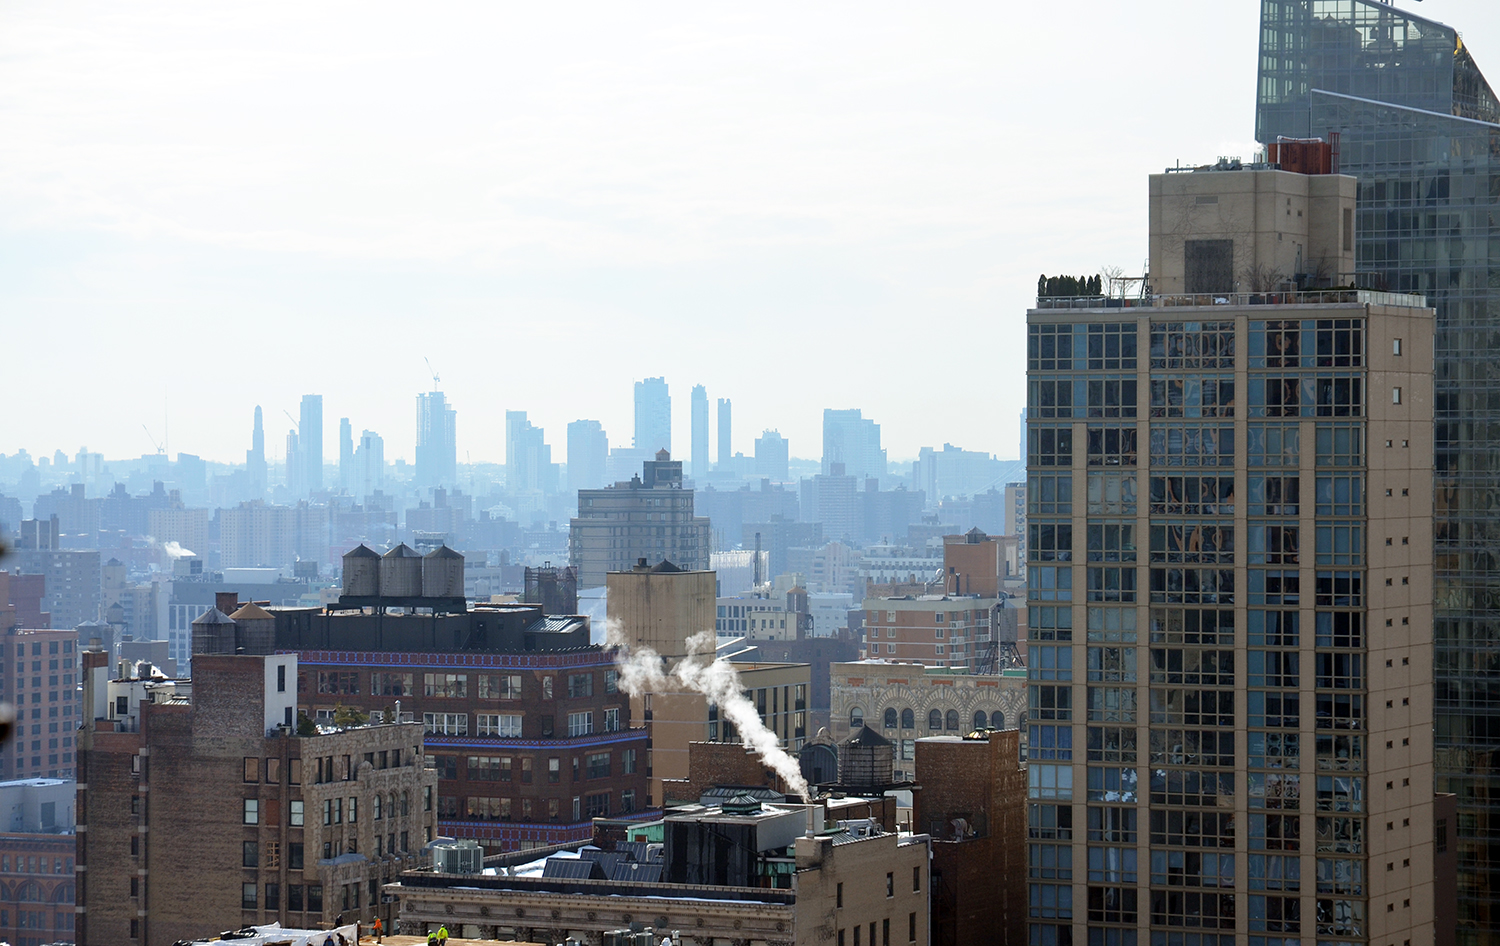 The Brooklyn skyline as seen from 172 Madison Avenue.